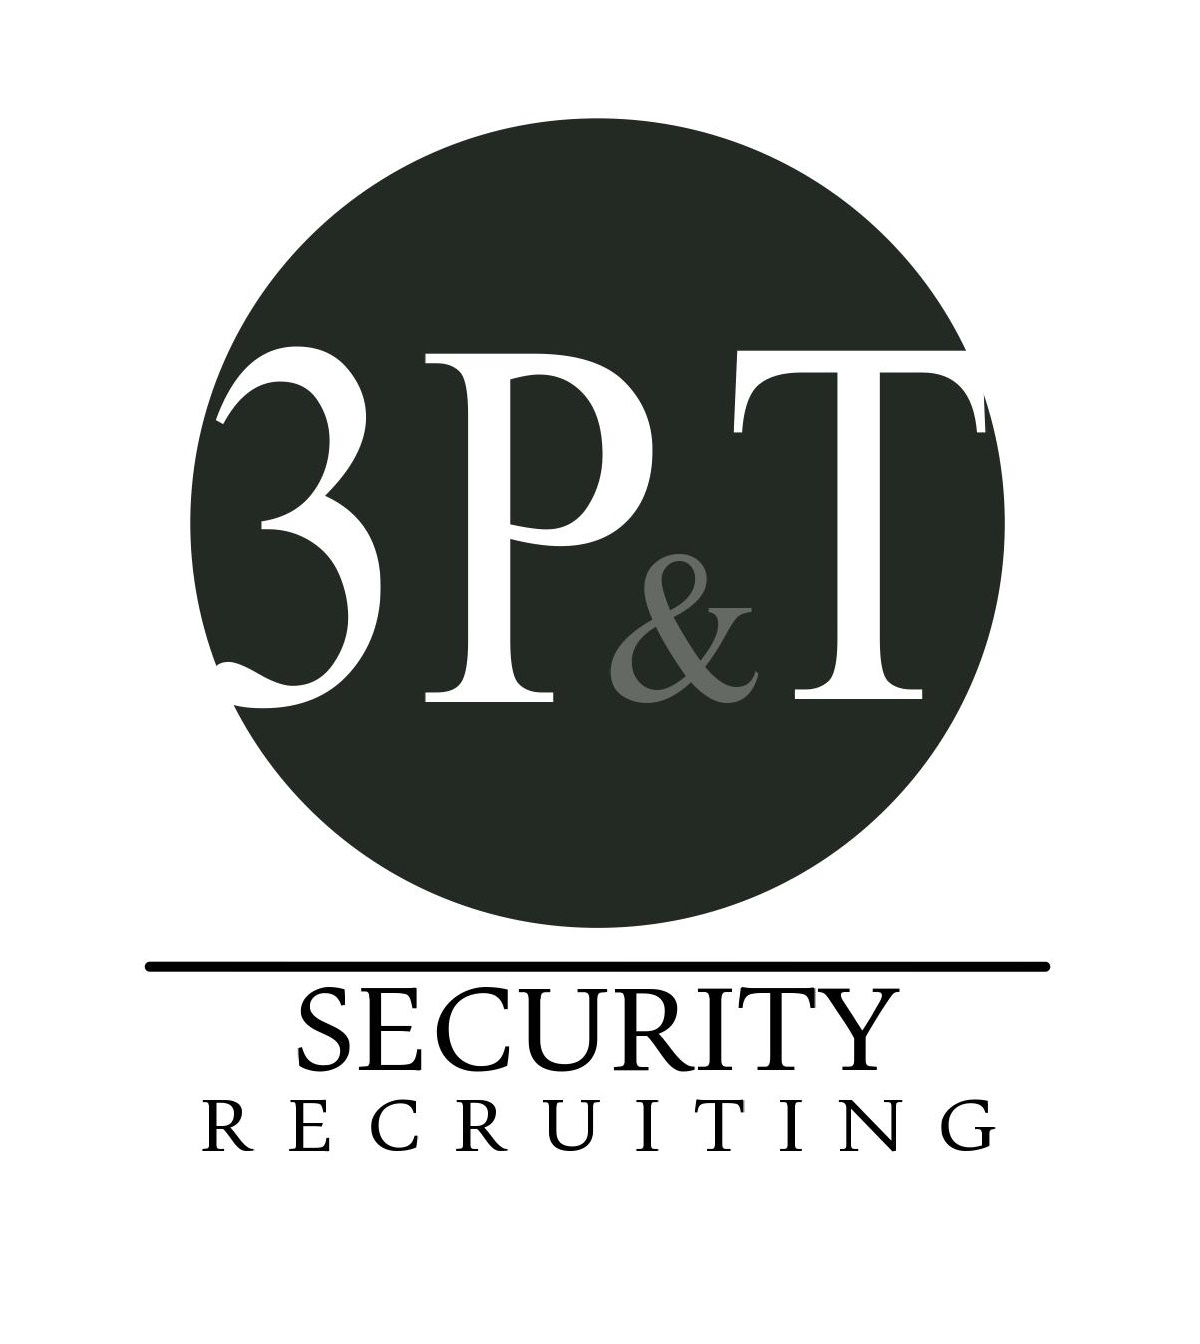 3P&T Security Recruiting